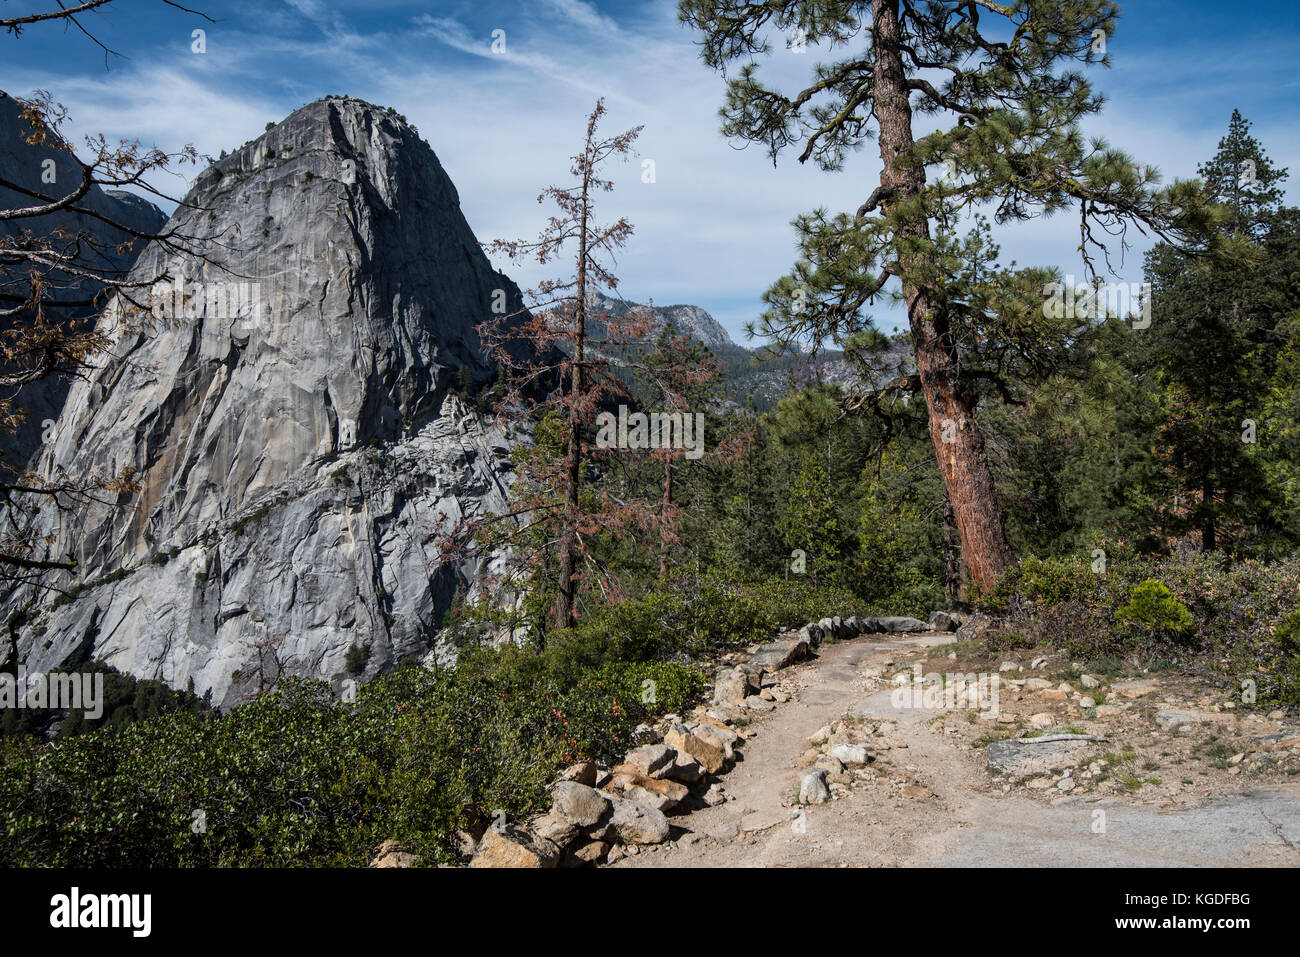 A side view of half dome from a hiking trail in Yosemite National Park. - Stock Image